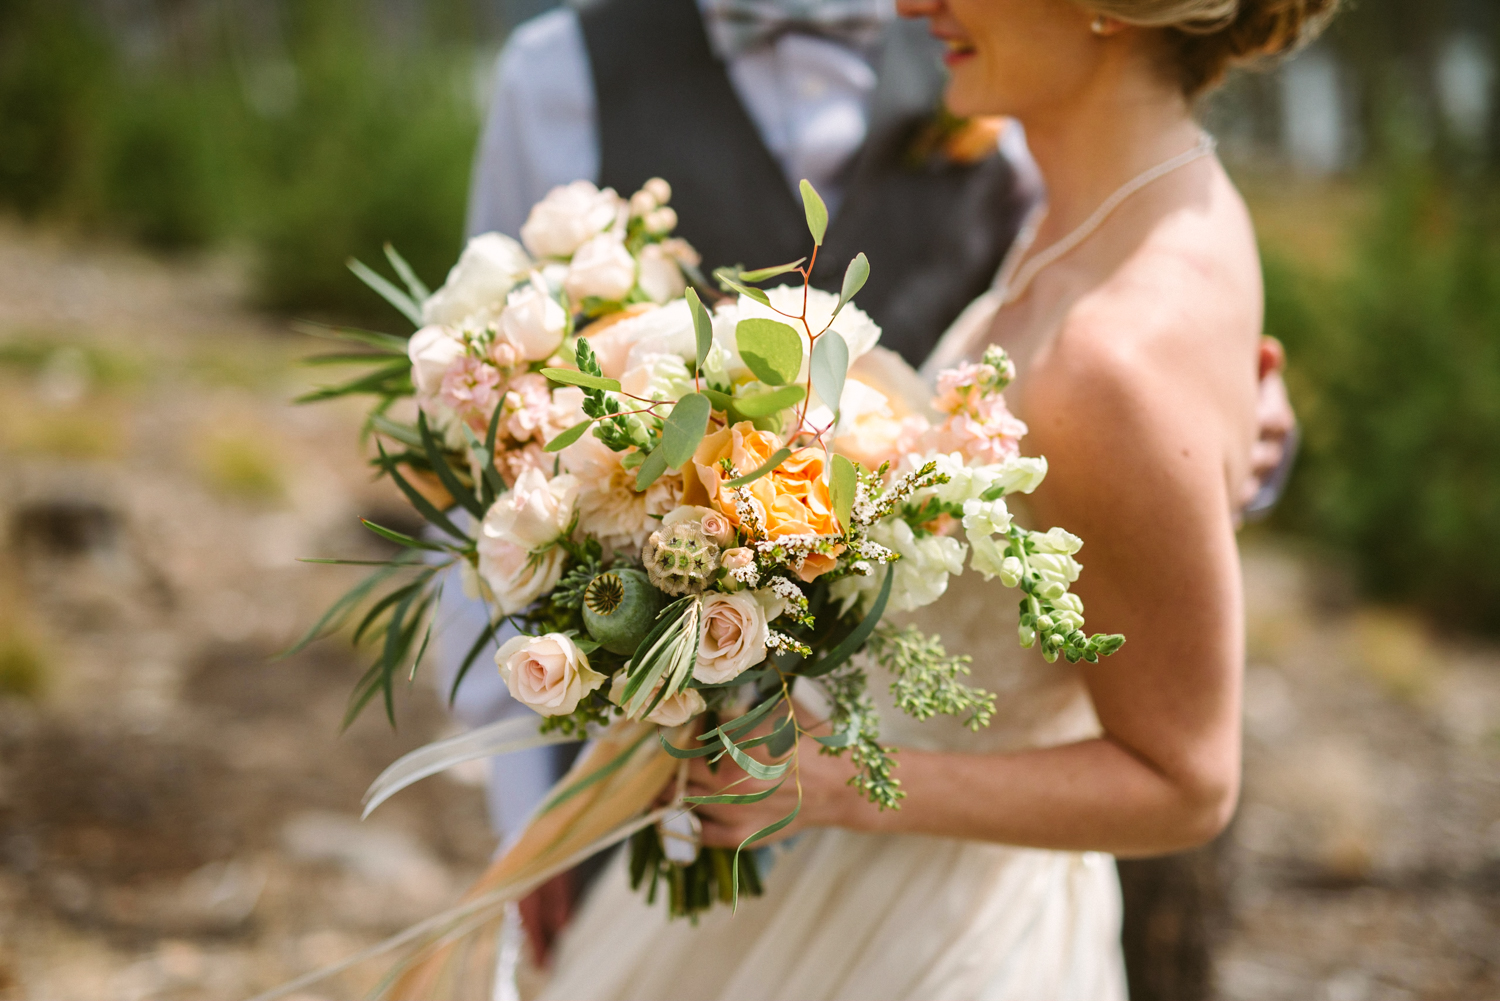 Flowers by Lace and Lilies / Colorado wedding florist - peach, sage, green, white, ivory, blush - natural, organic, romantic, whimsical - Fort Collins, Grand Lake, Destination, Travel - bride and groom, bridal bouquet, ranunculus, garden rose, poppy pod, eucalyptus